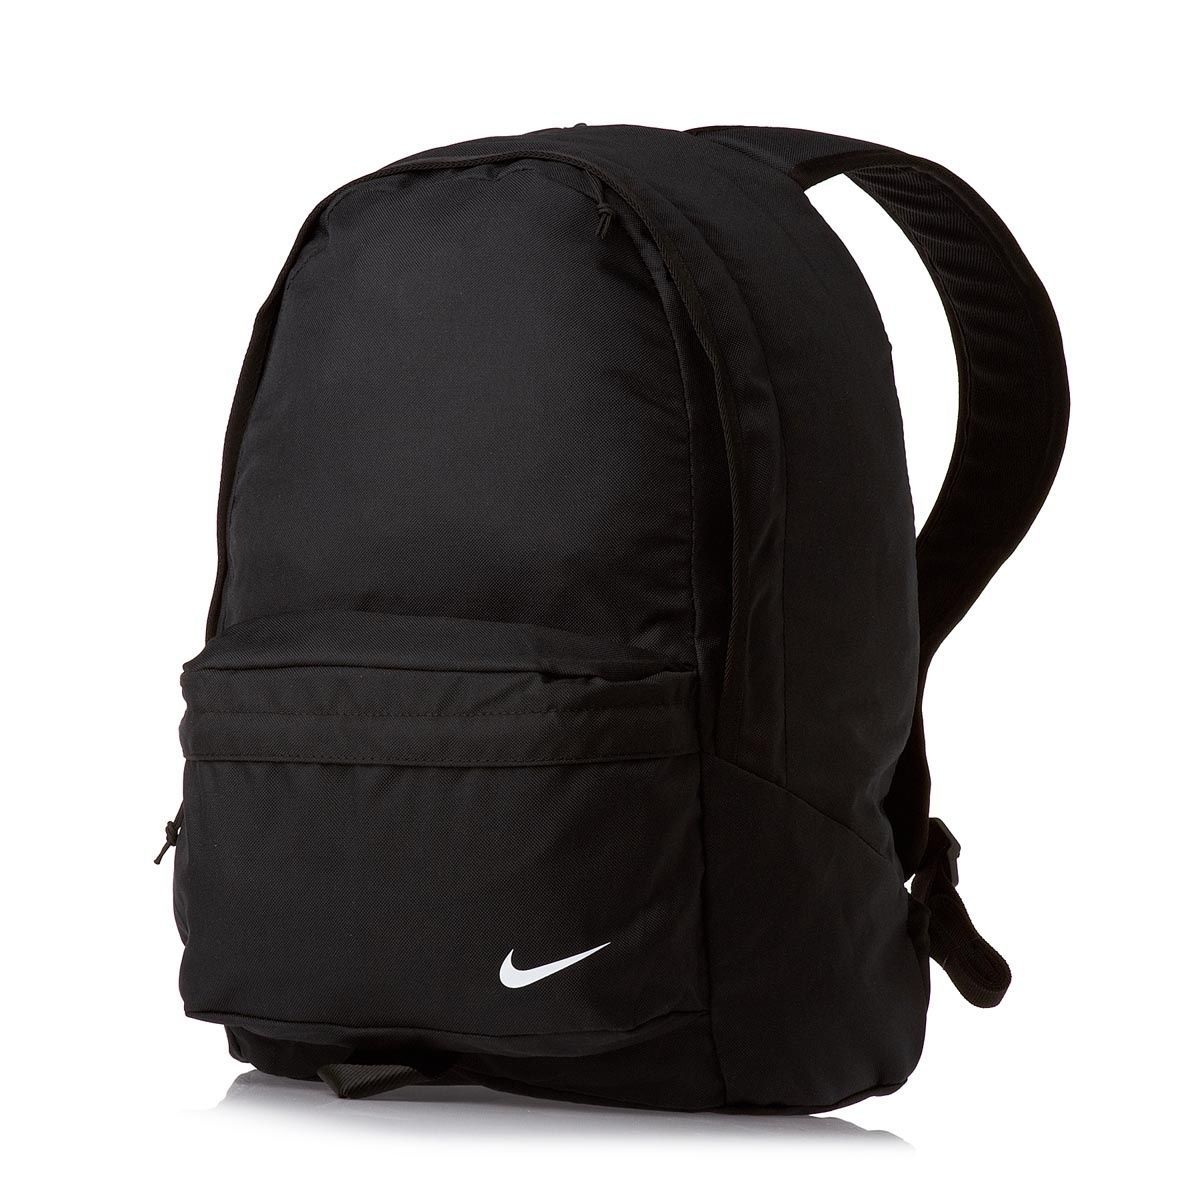 Nike Skateboarding Backpacks - Nike Skateboarding Nike Piedmont Backpack - Black/Black/(White)